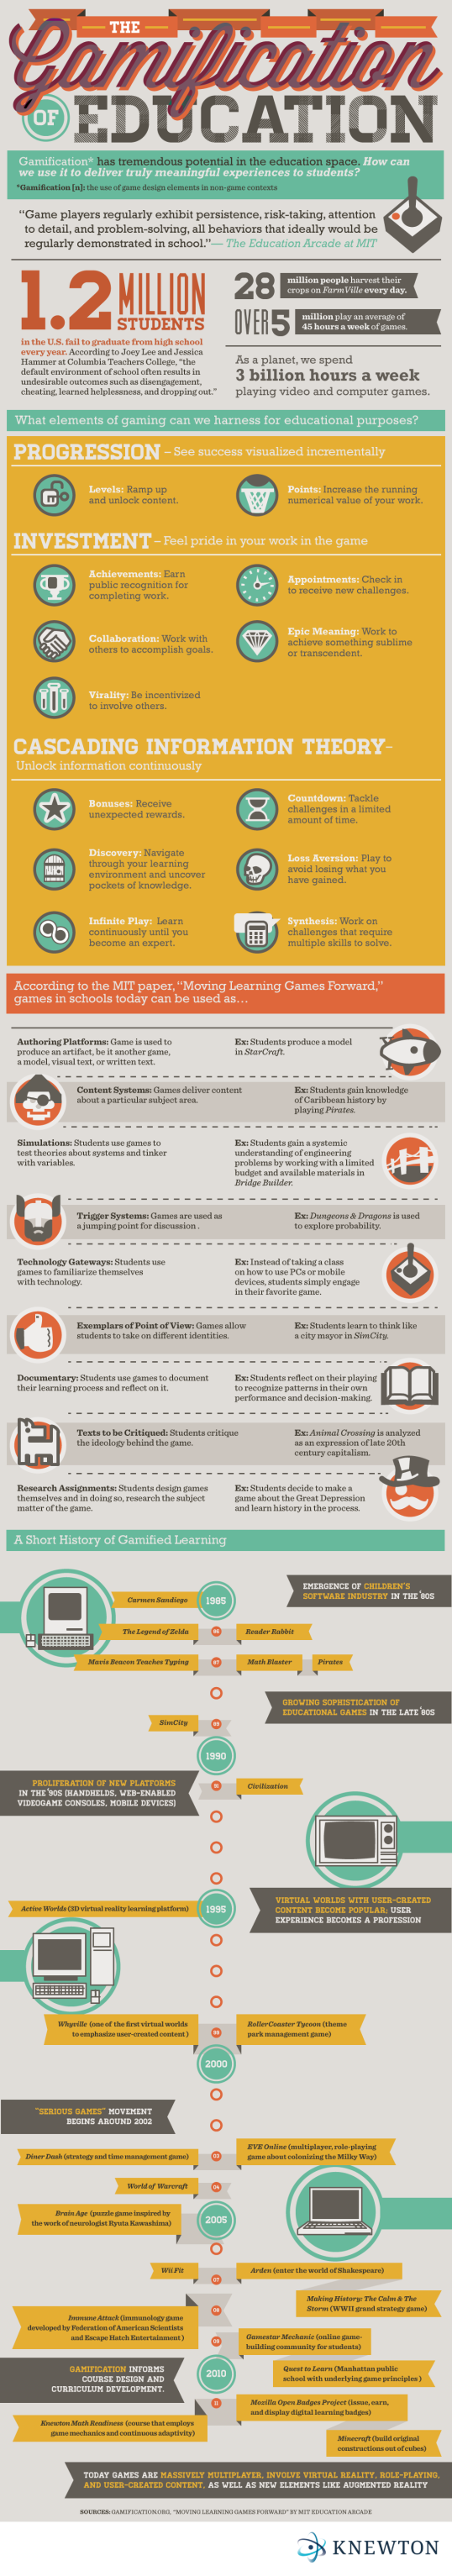 An infographic exploring gamification in education, summarizing MIT's whitepaper on the subject